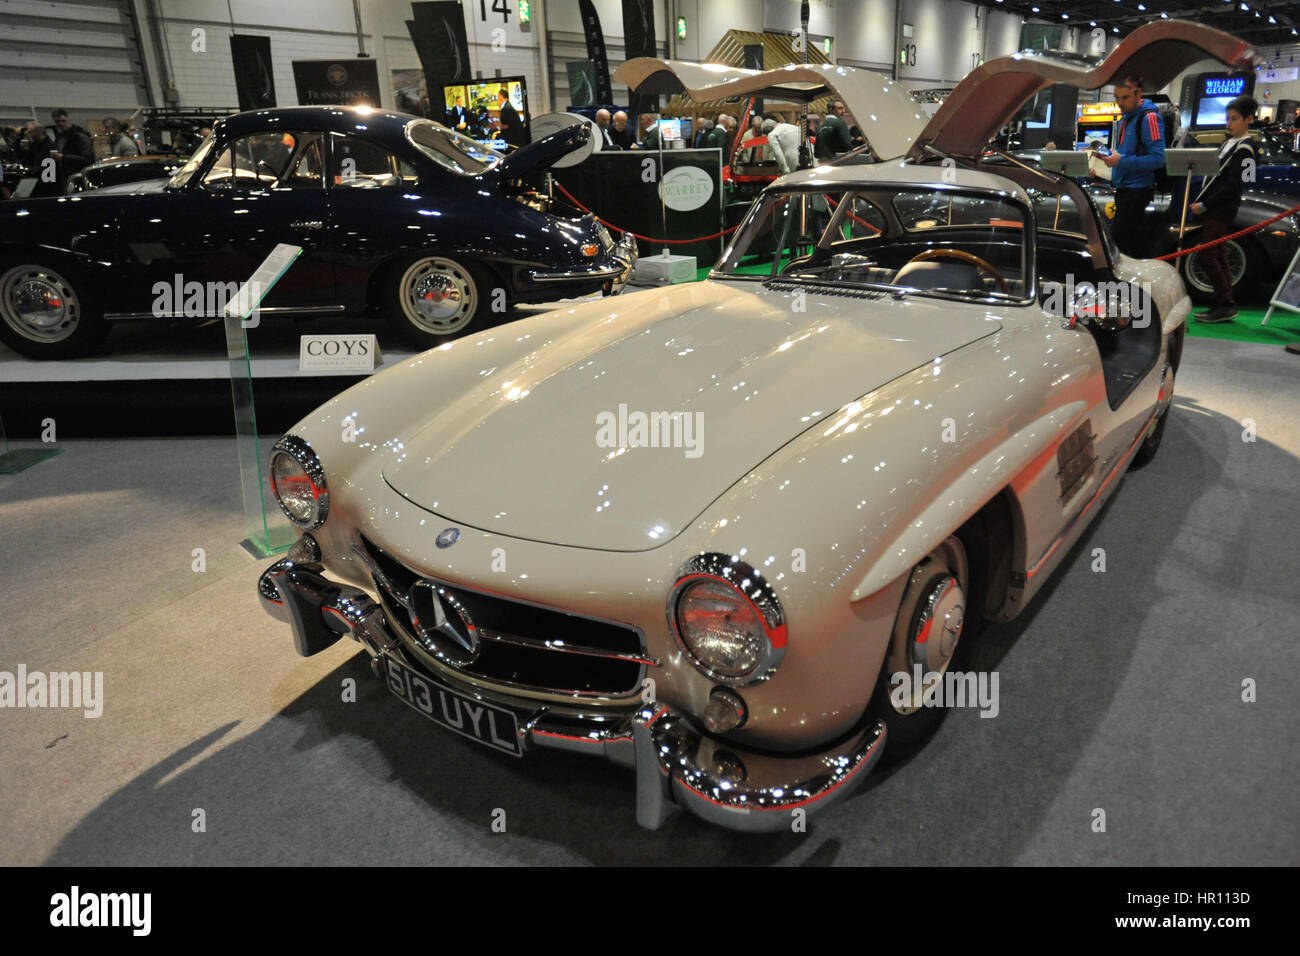 a 1955 mercedes benz 300sl gullwing on display at the london classic car show which